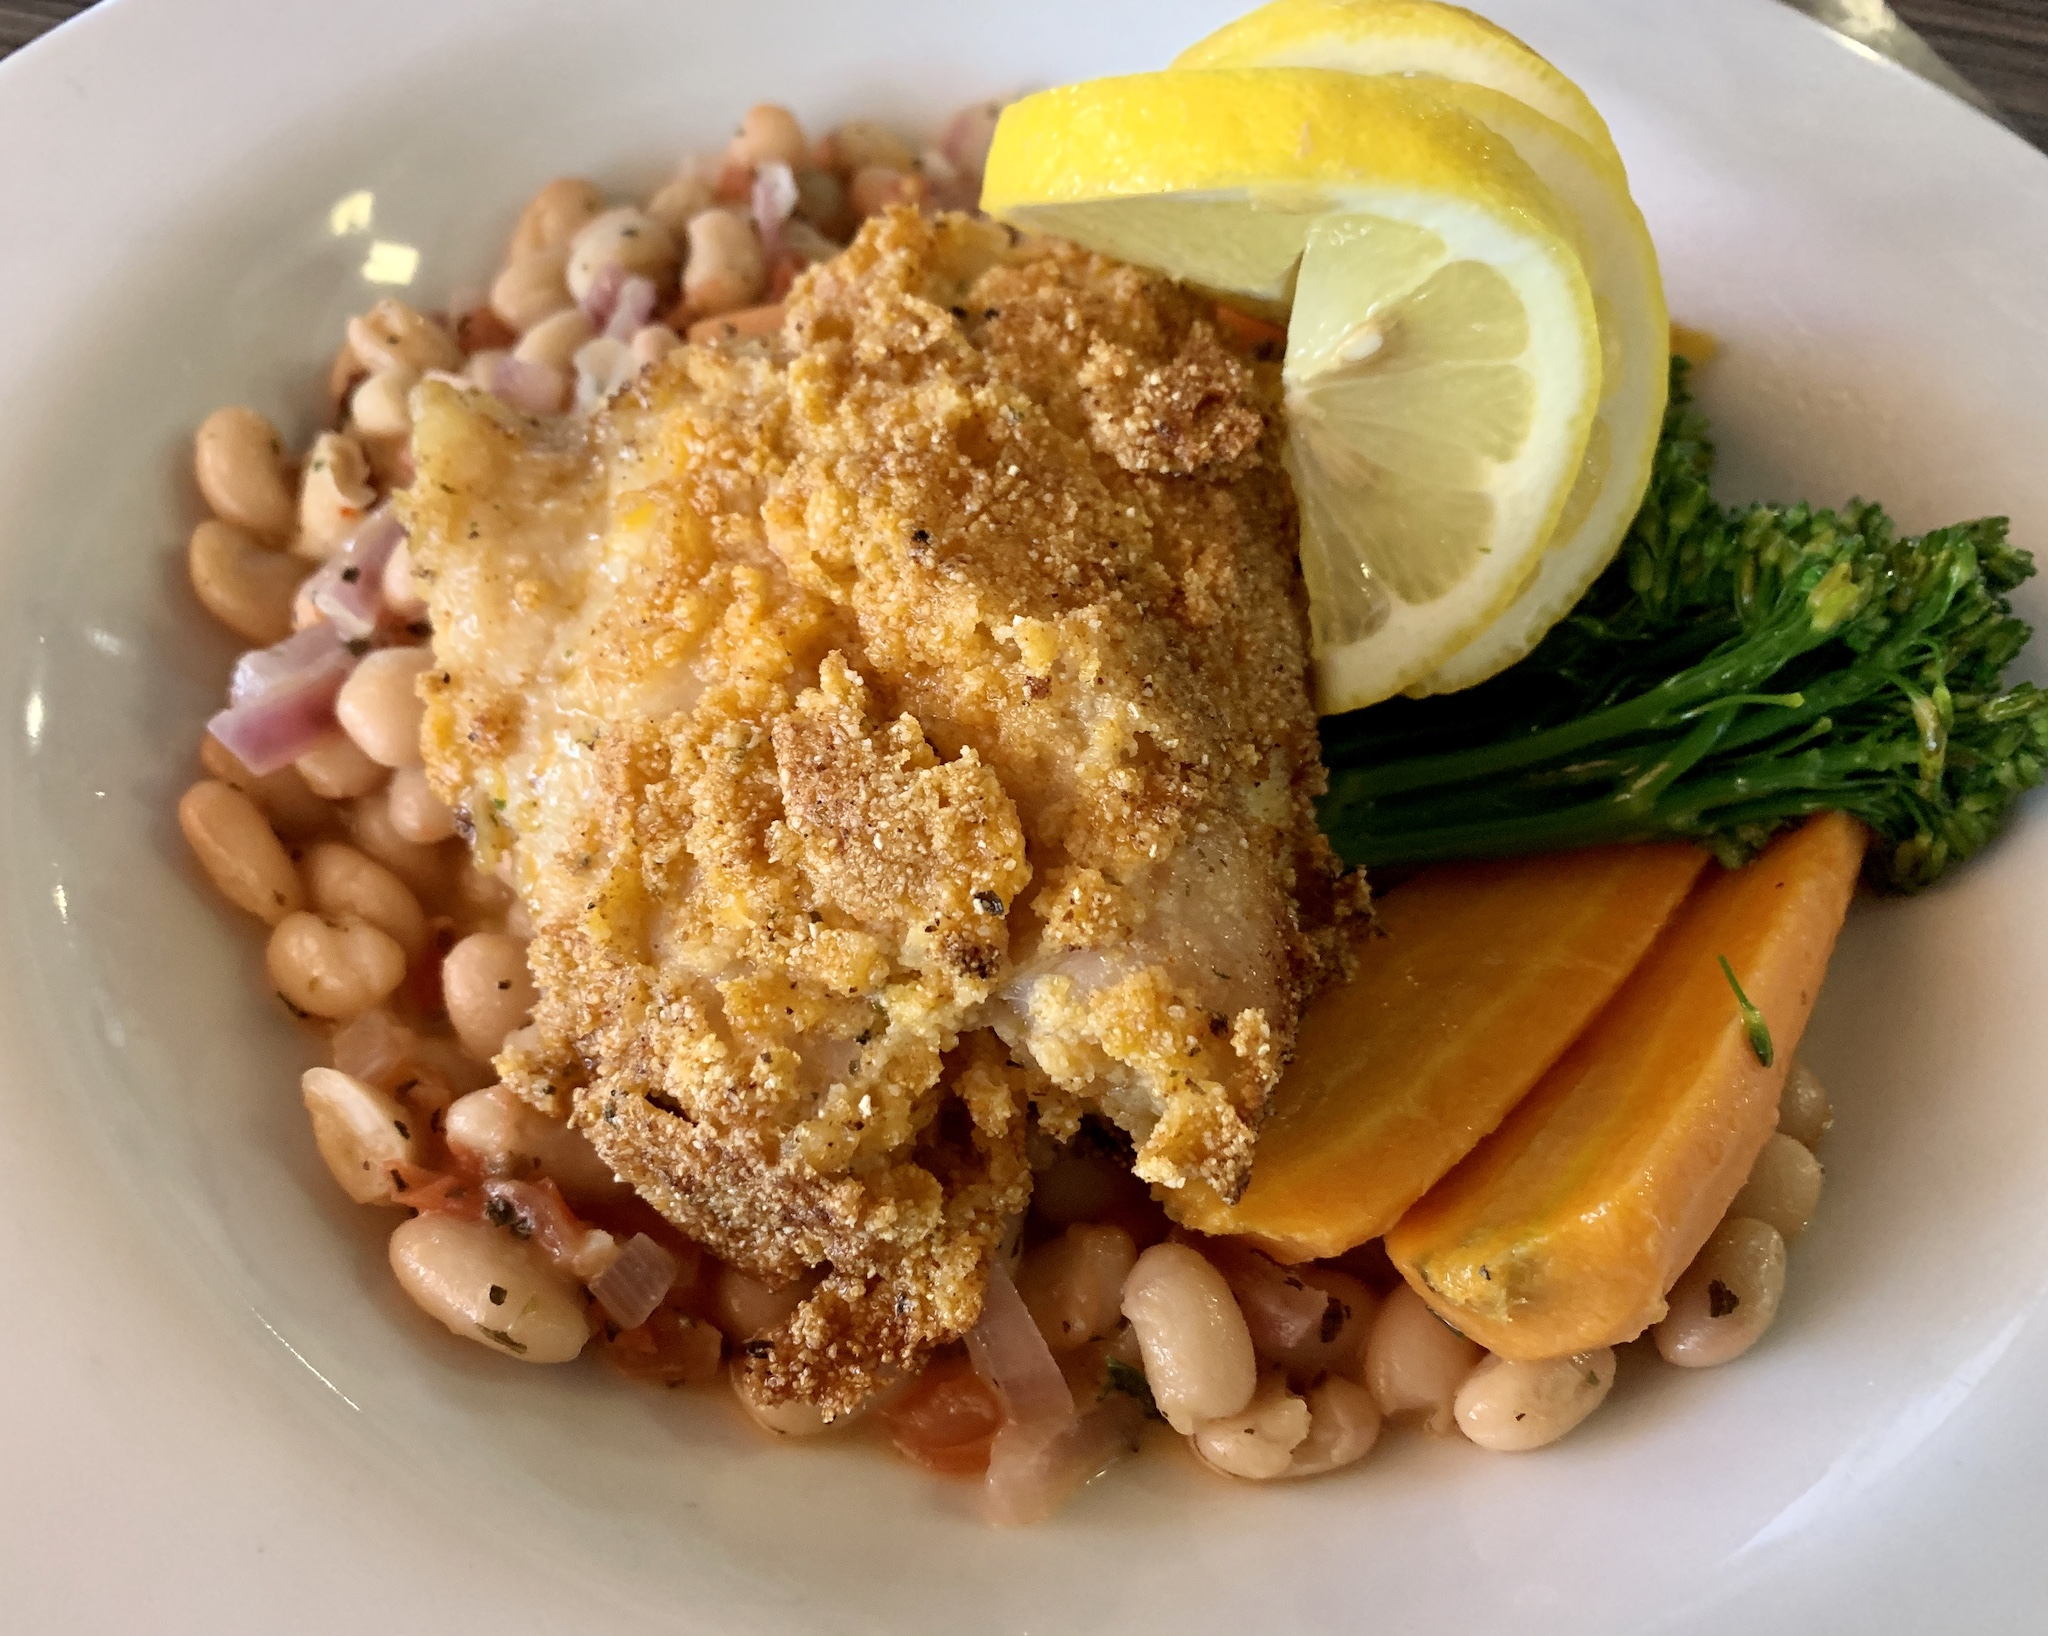 Compass Grille - Cornmeal-Dusted Fresh Florida Grouper with white bean ragout, braised fennel and chef's choice of vegetables